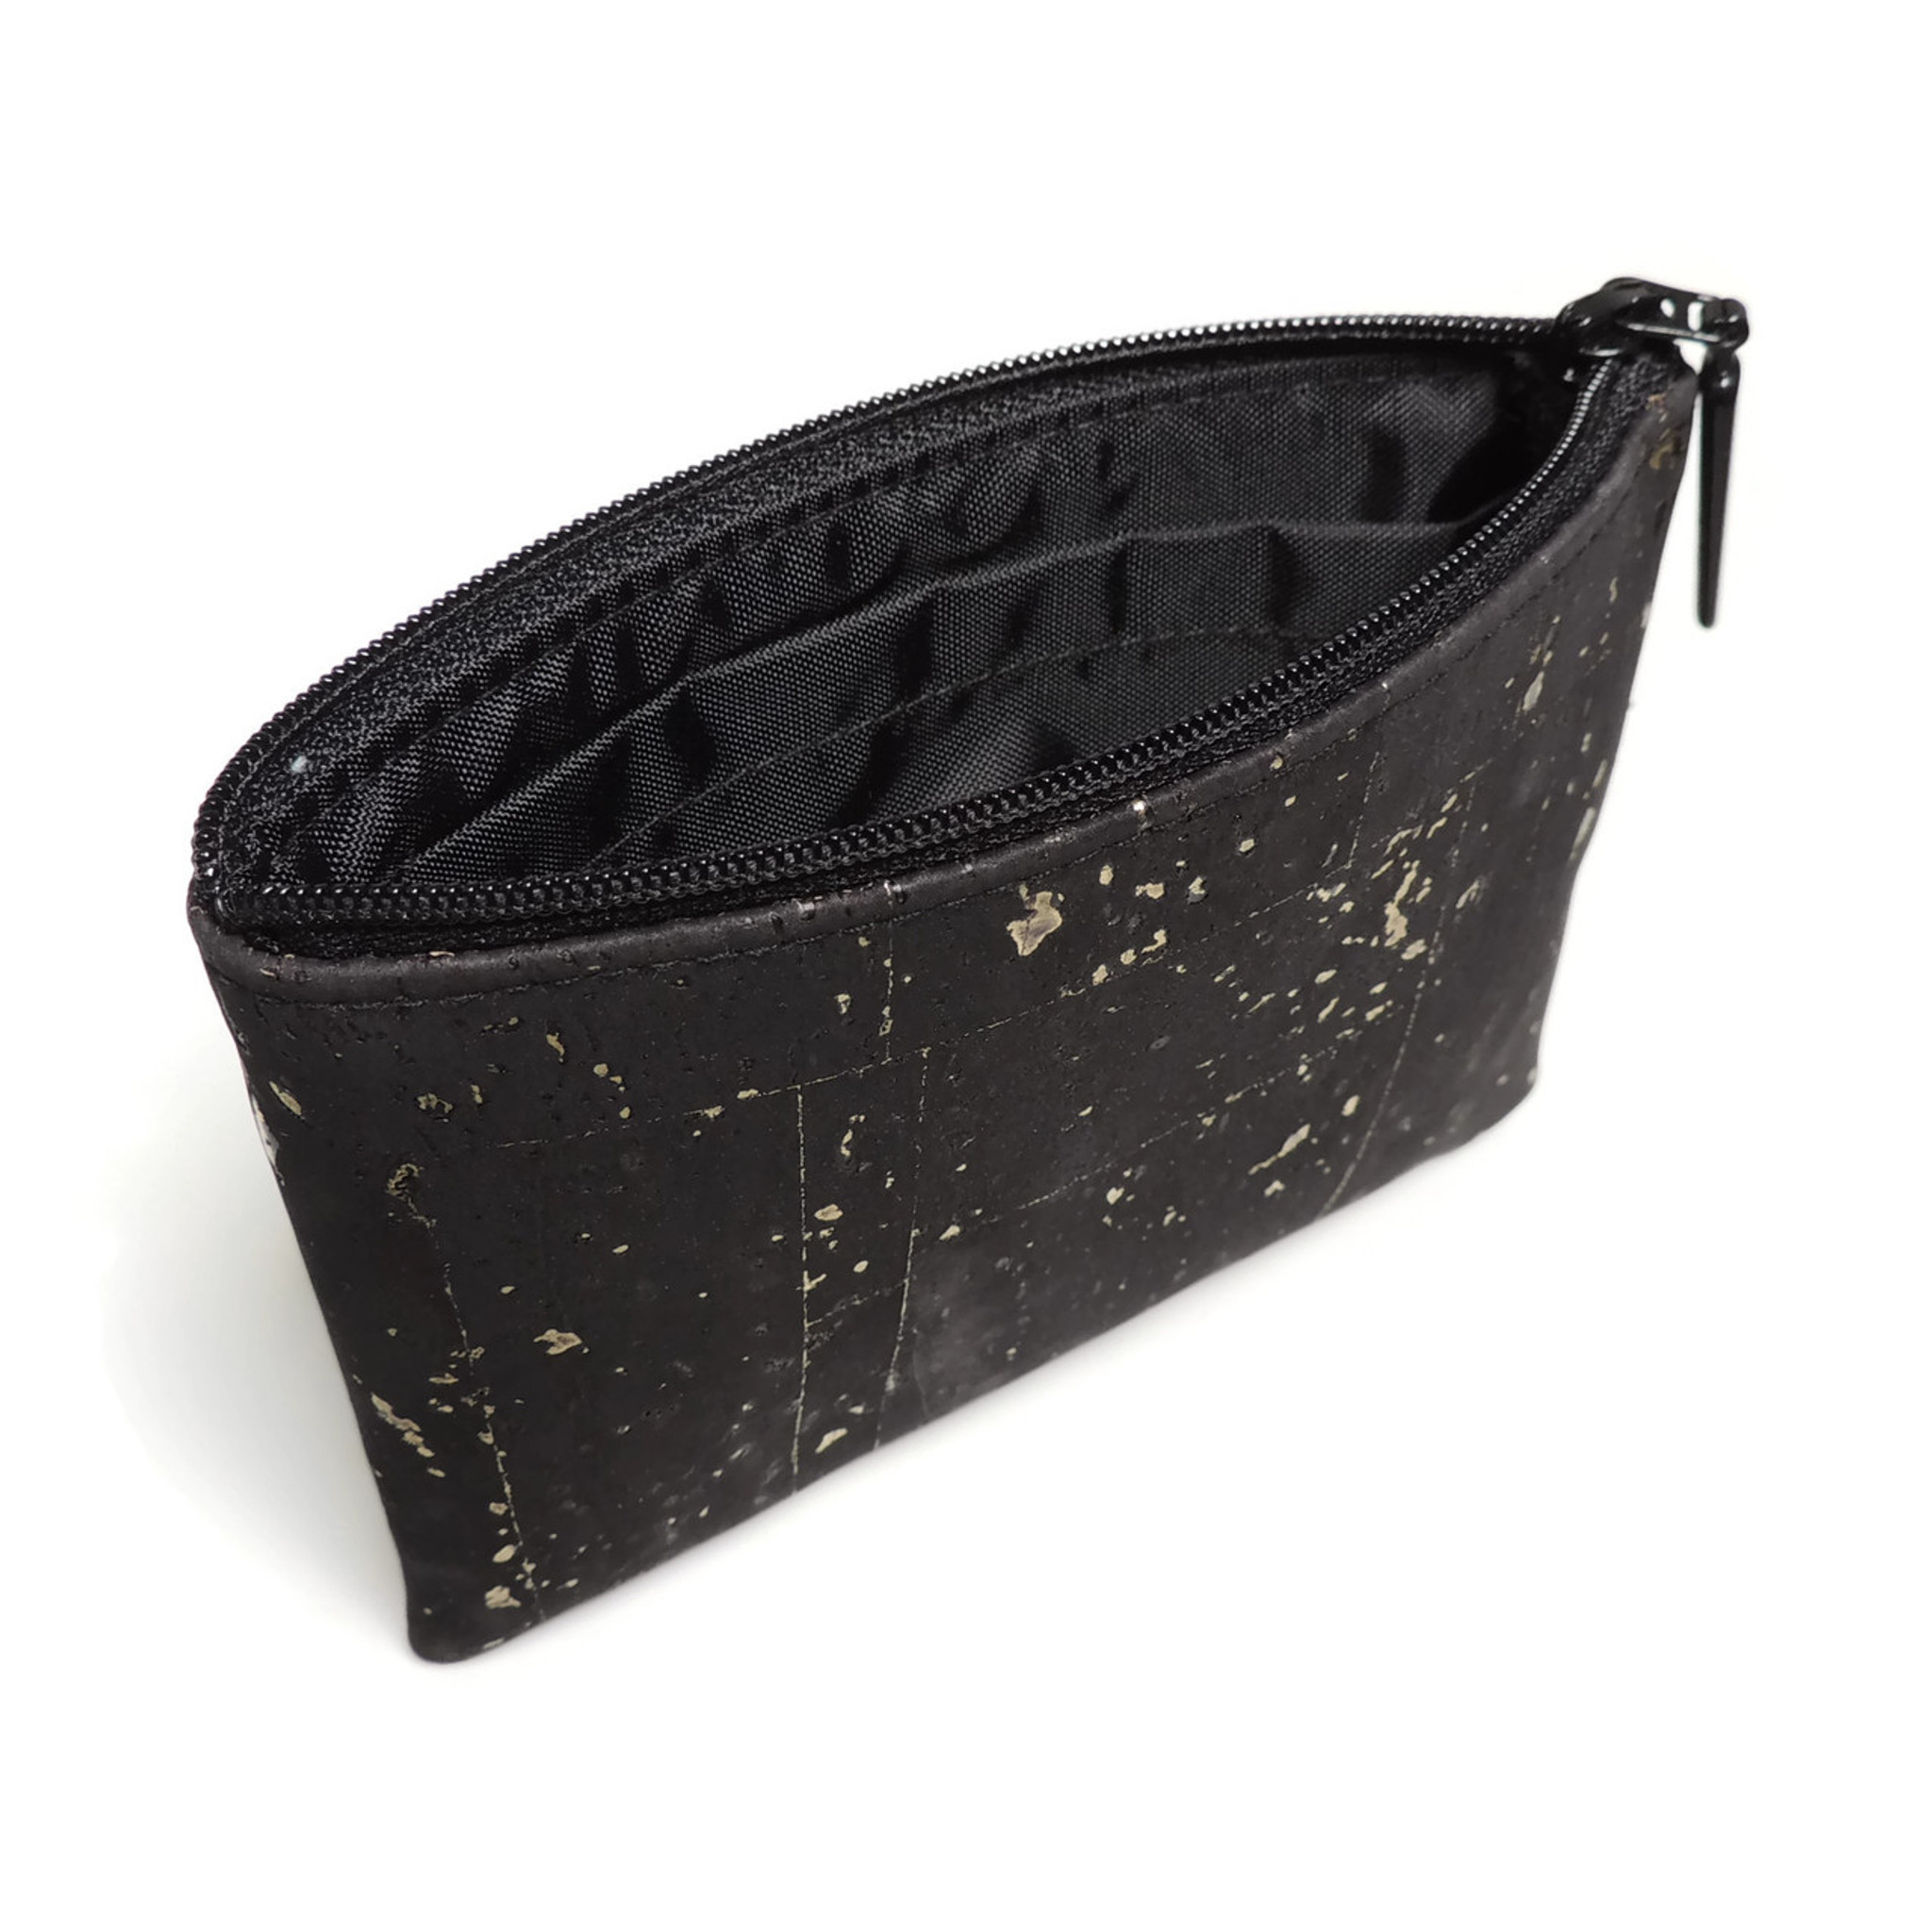 Mini Pouch in Black and Gold Cork